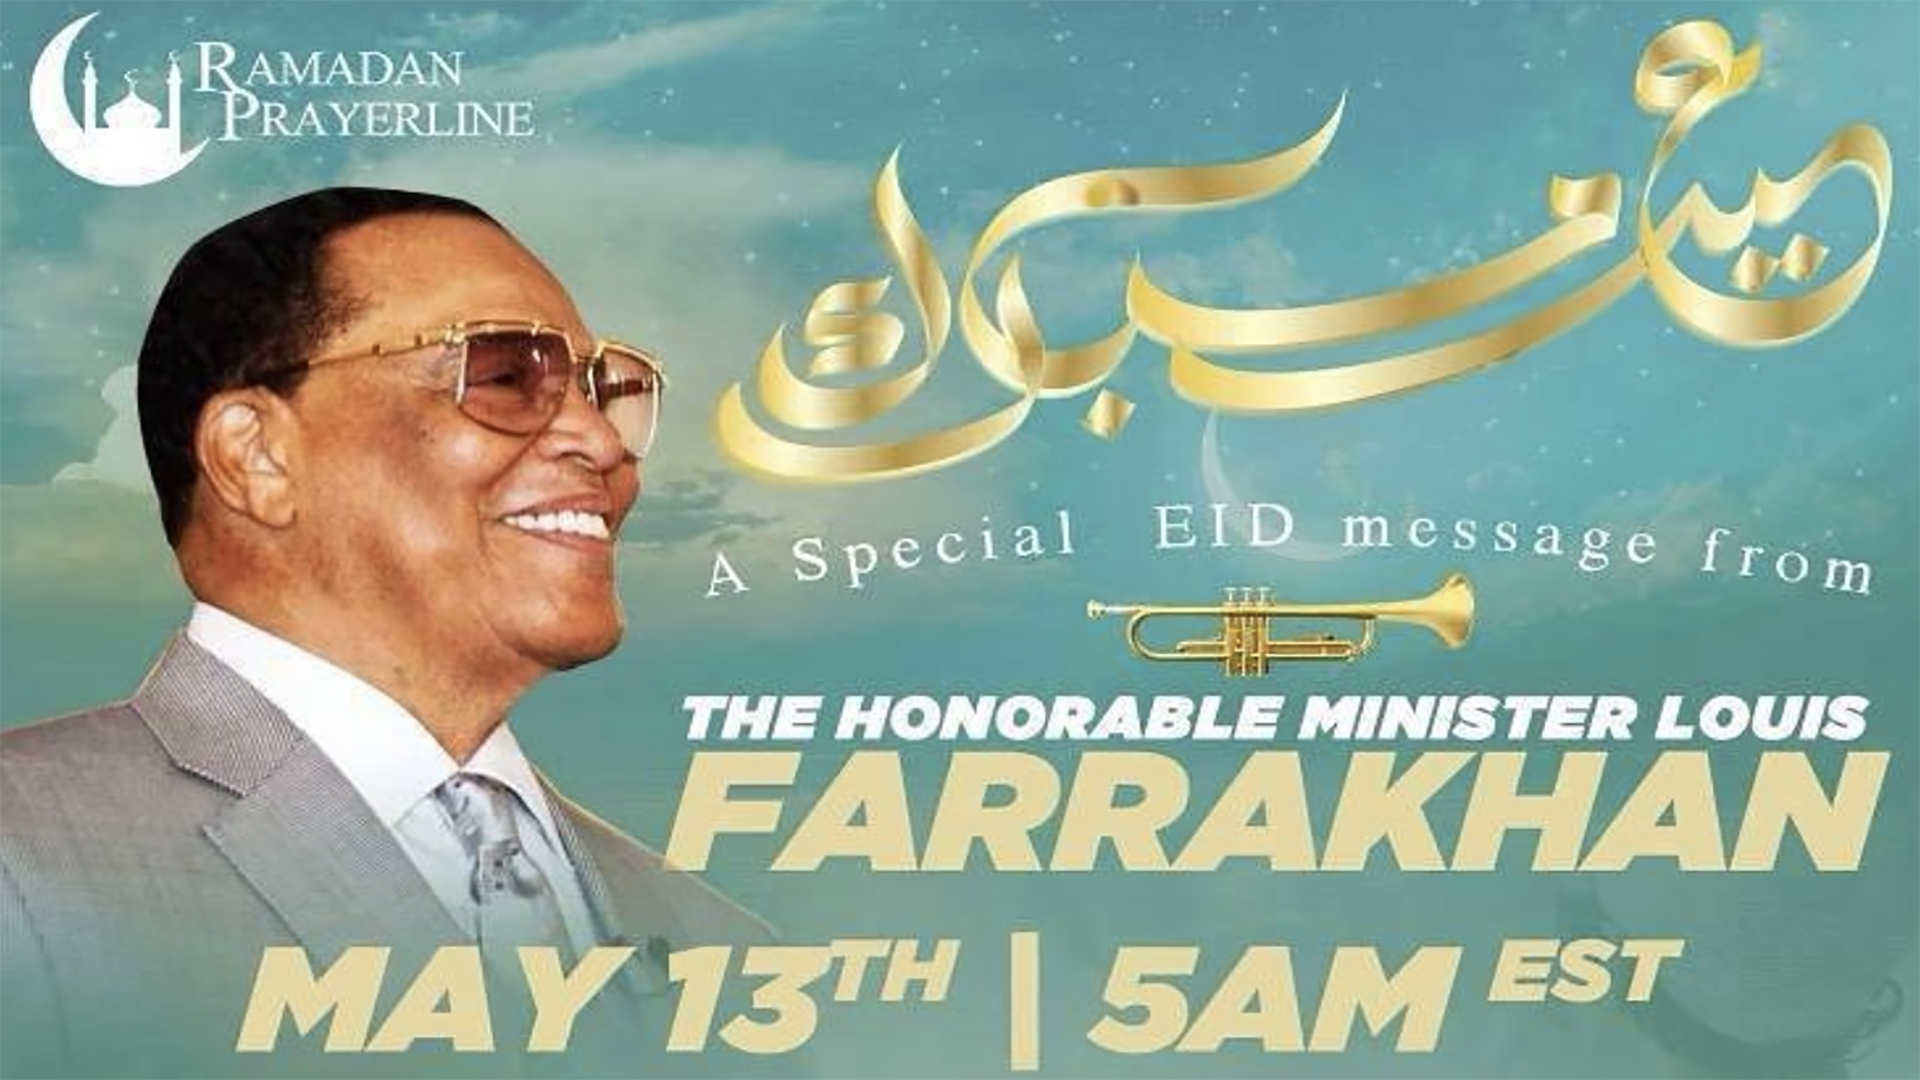 Minister Farrakhan Delivers Special Eid Message